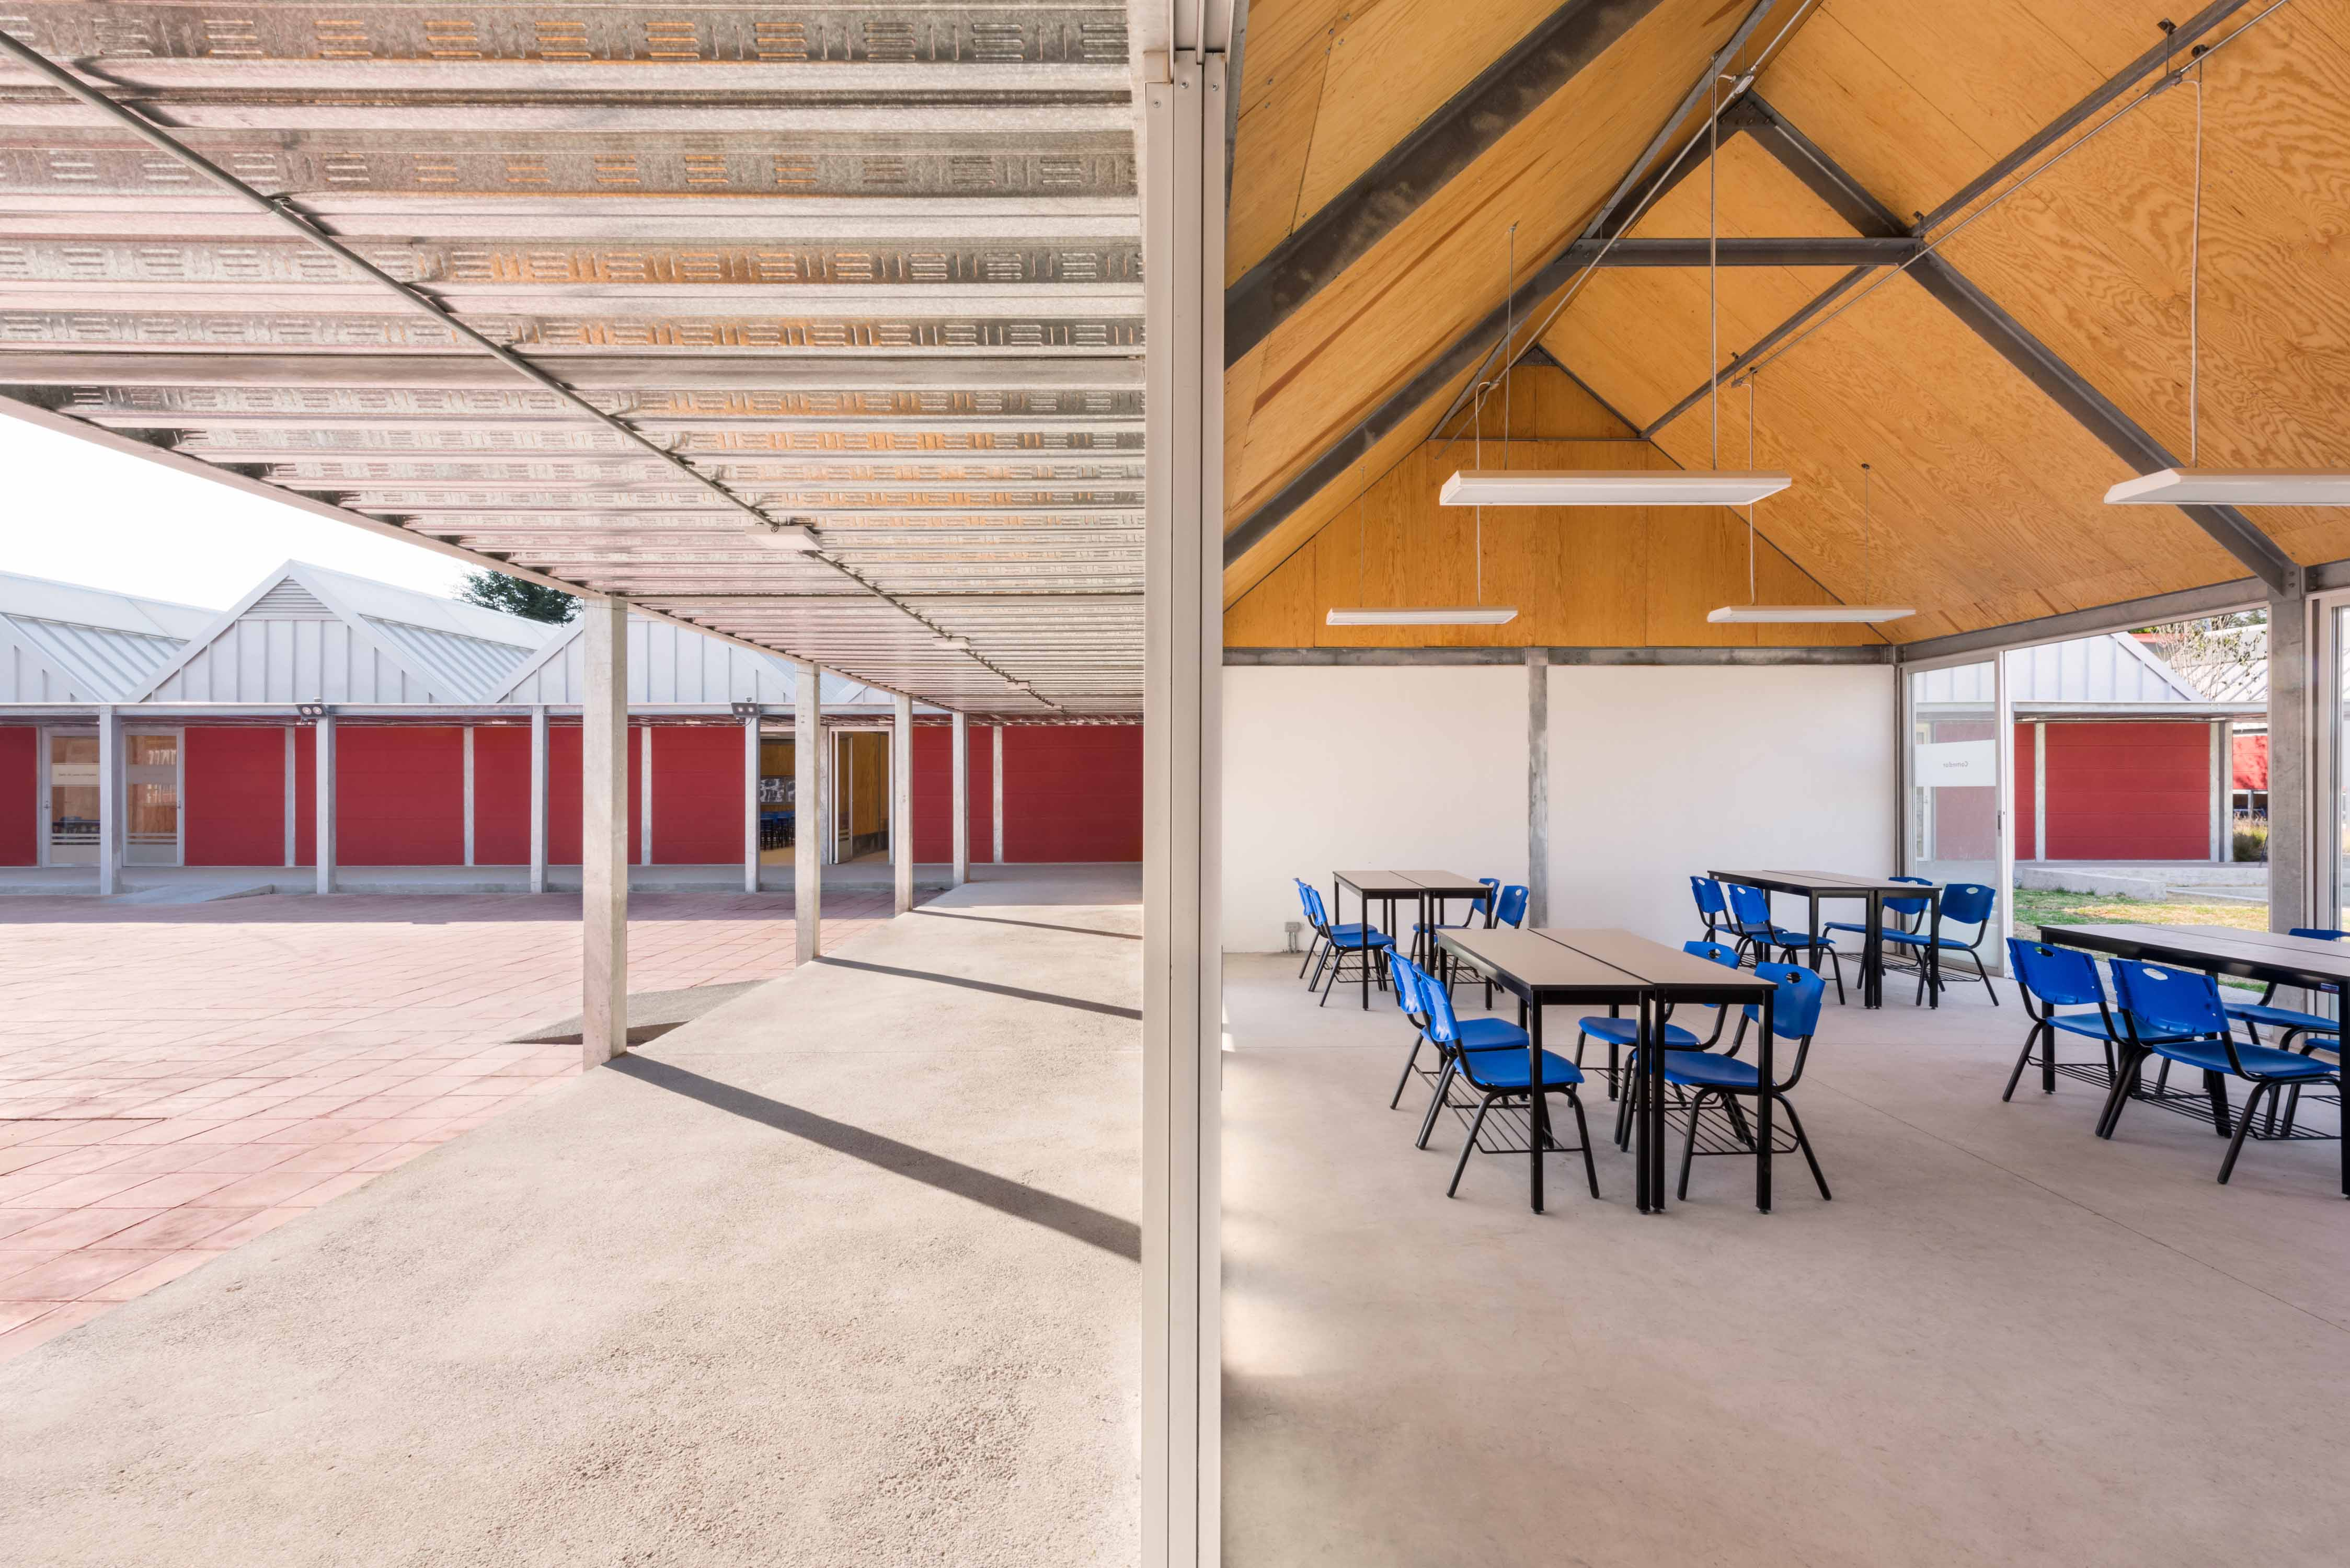 Photo of a school interior and exterior